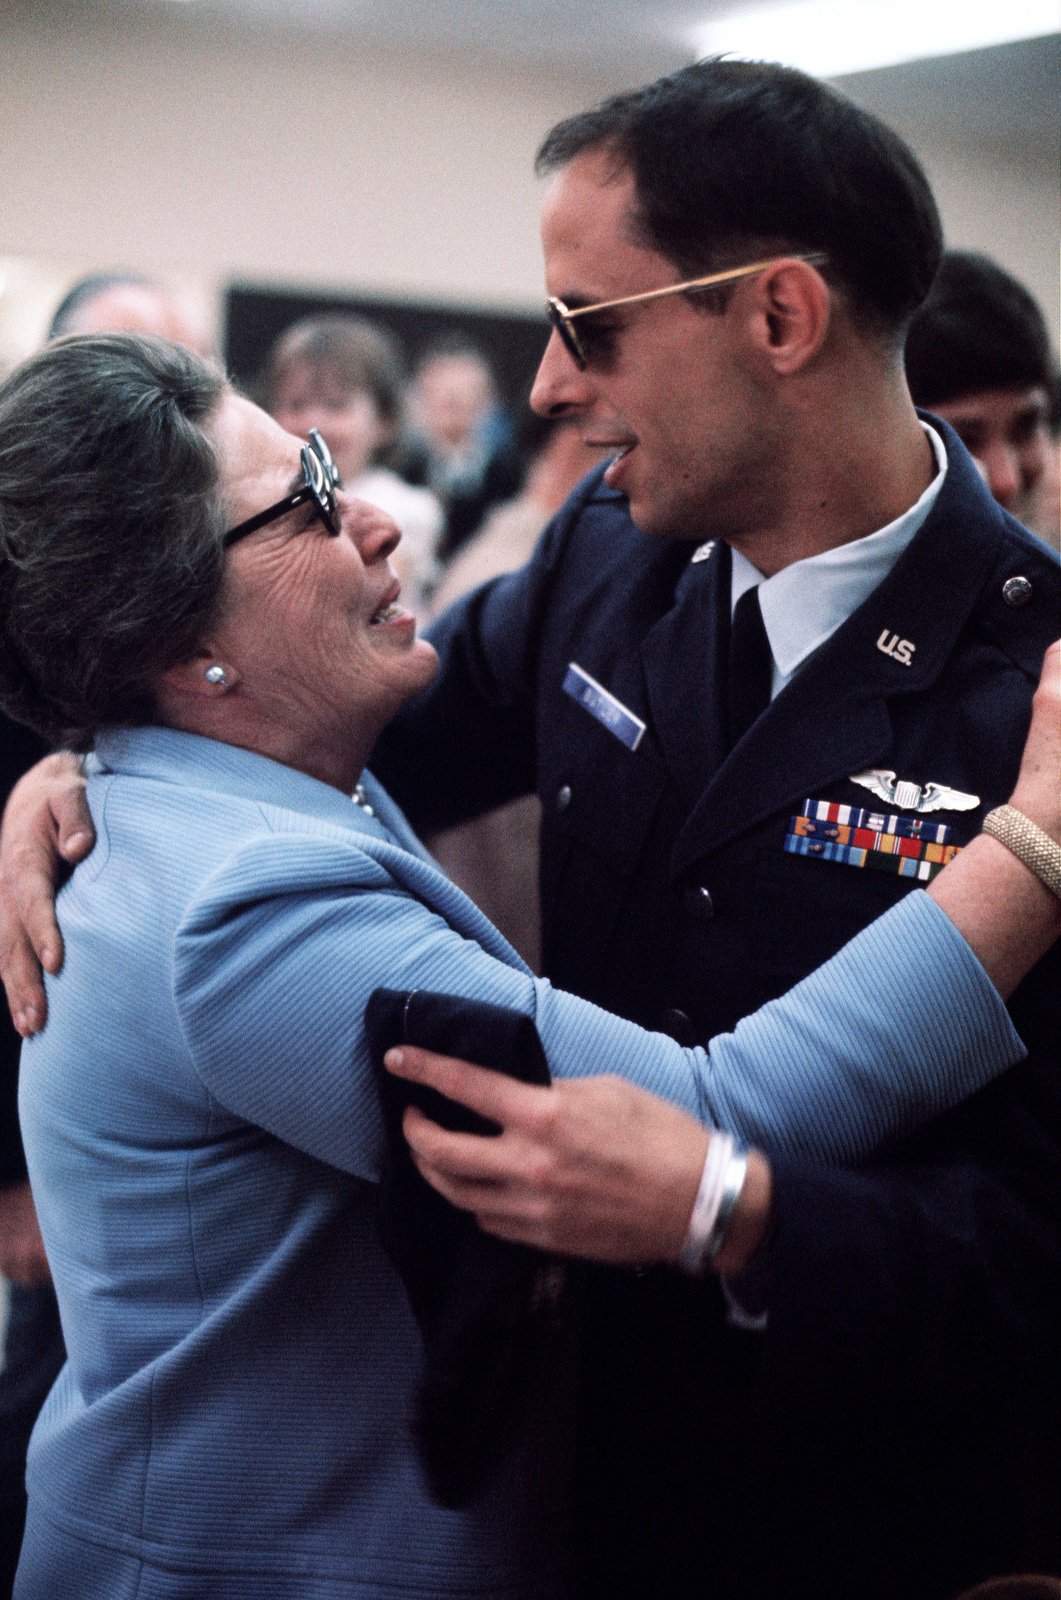 Captain William W. Butler, a recently released prisoner of war, greets a member of his family upon his arrival at Travis Air Force Base